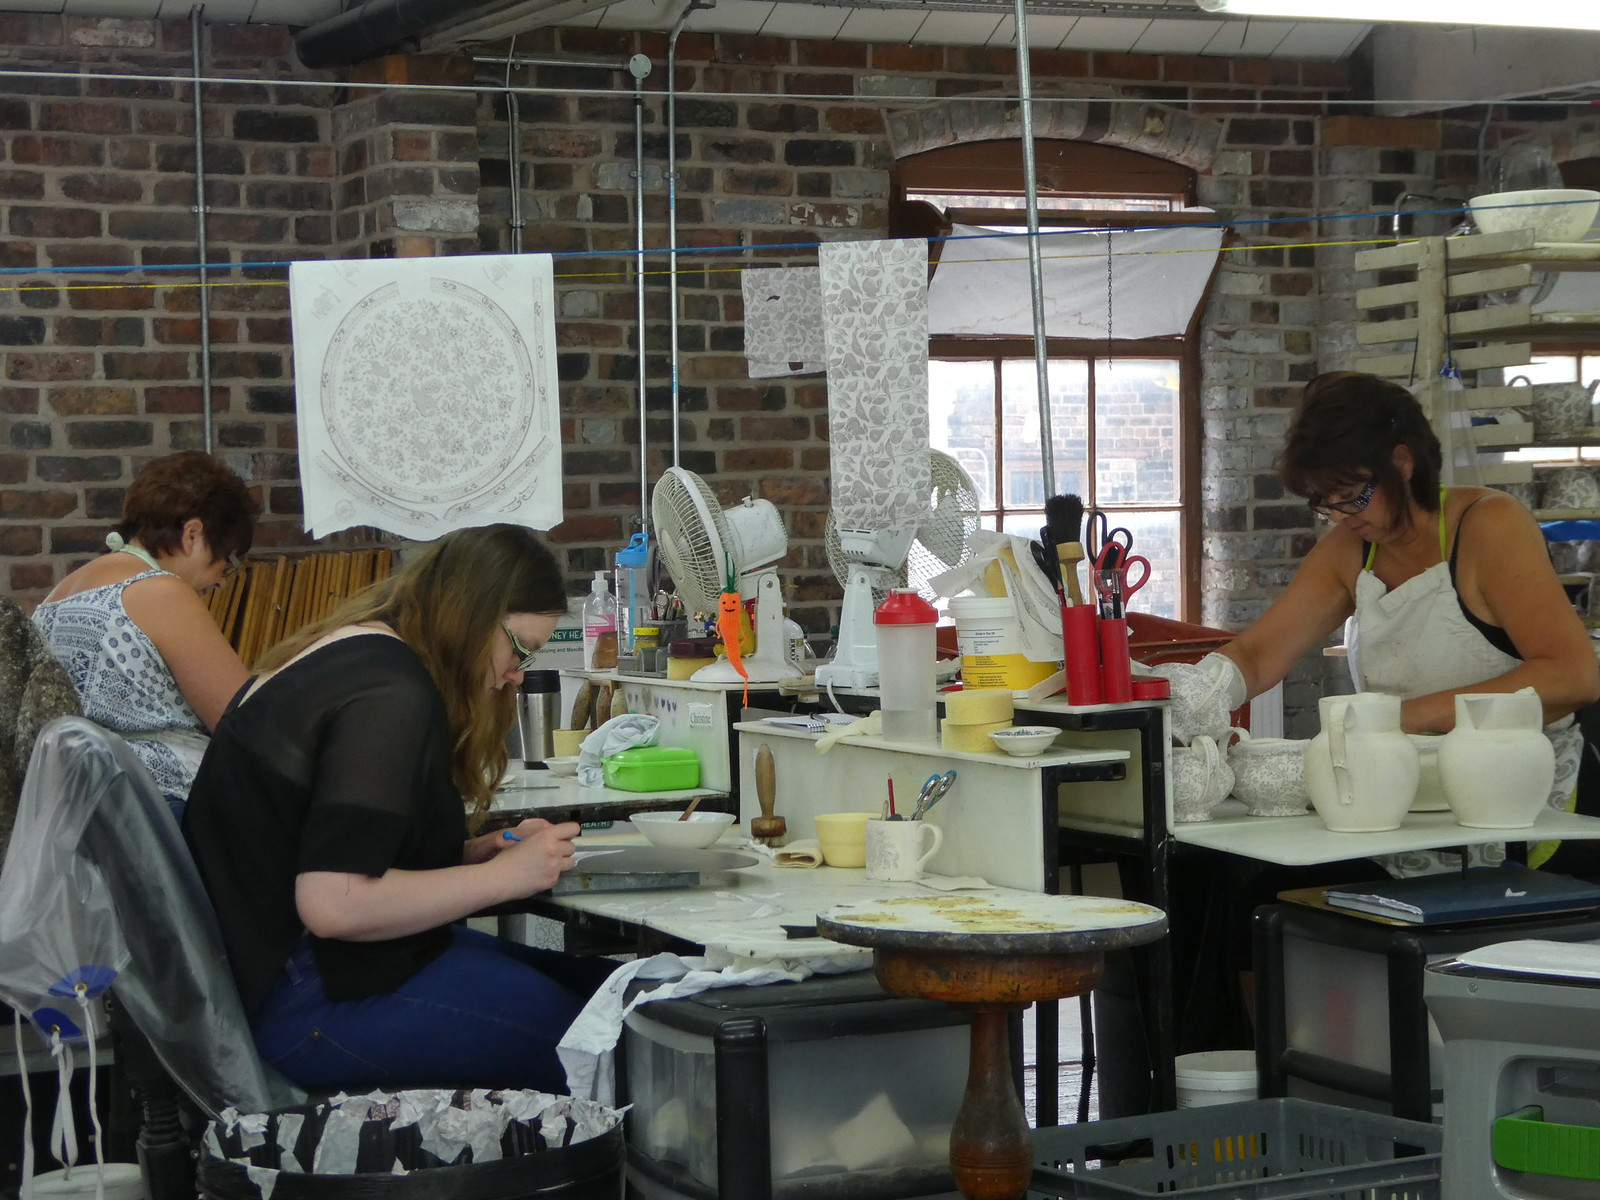 Middleport Pottery tour, Burslem